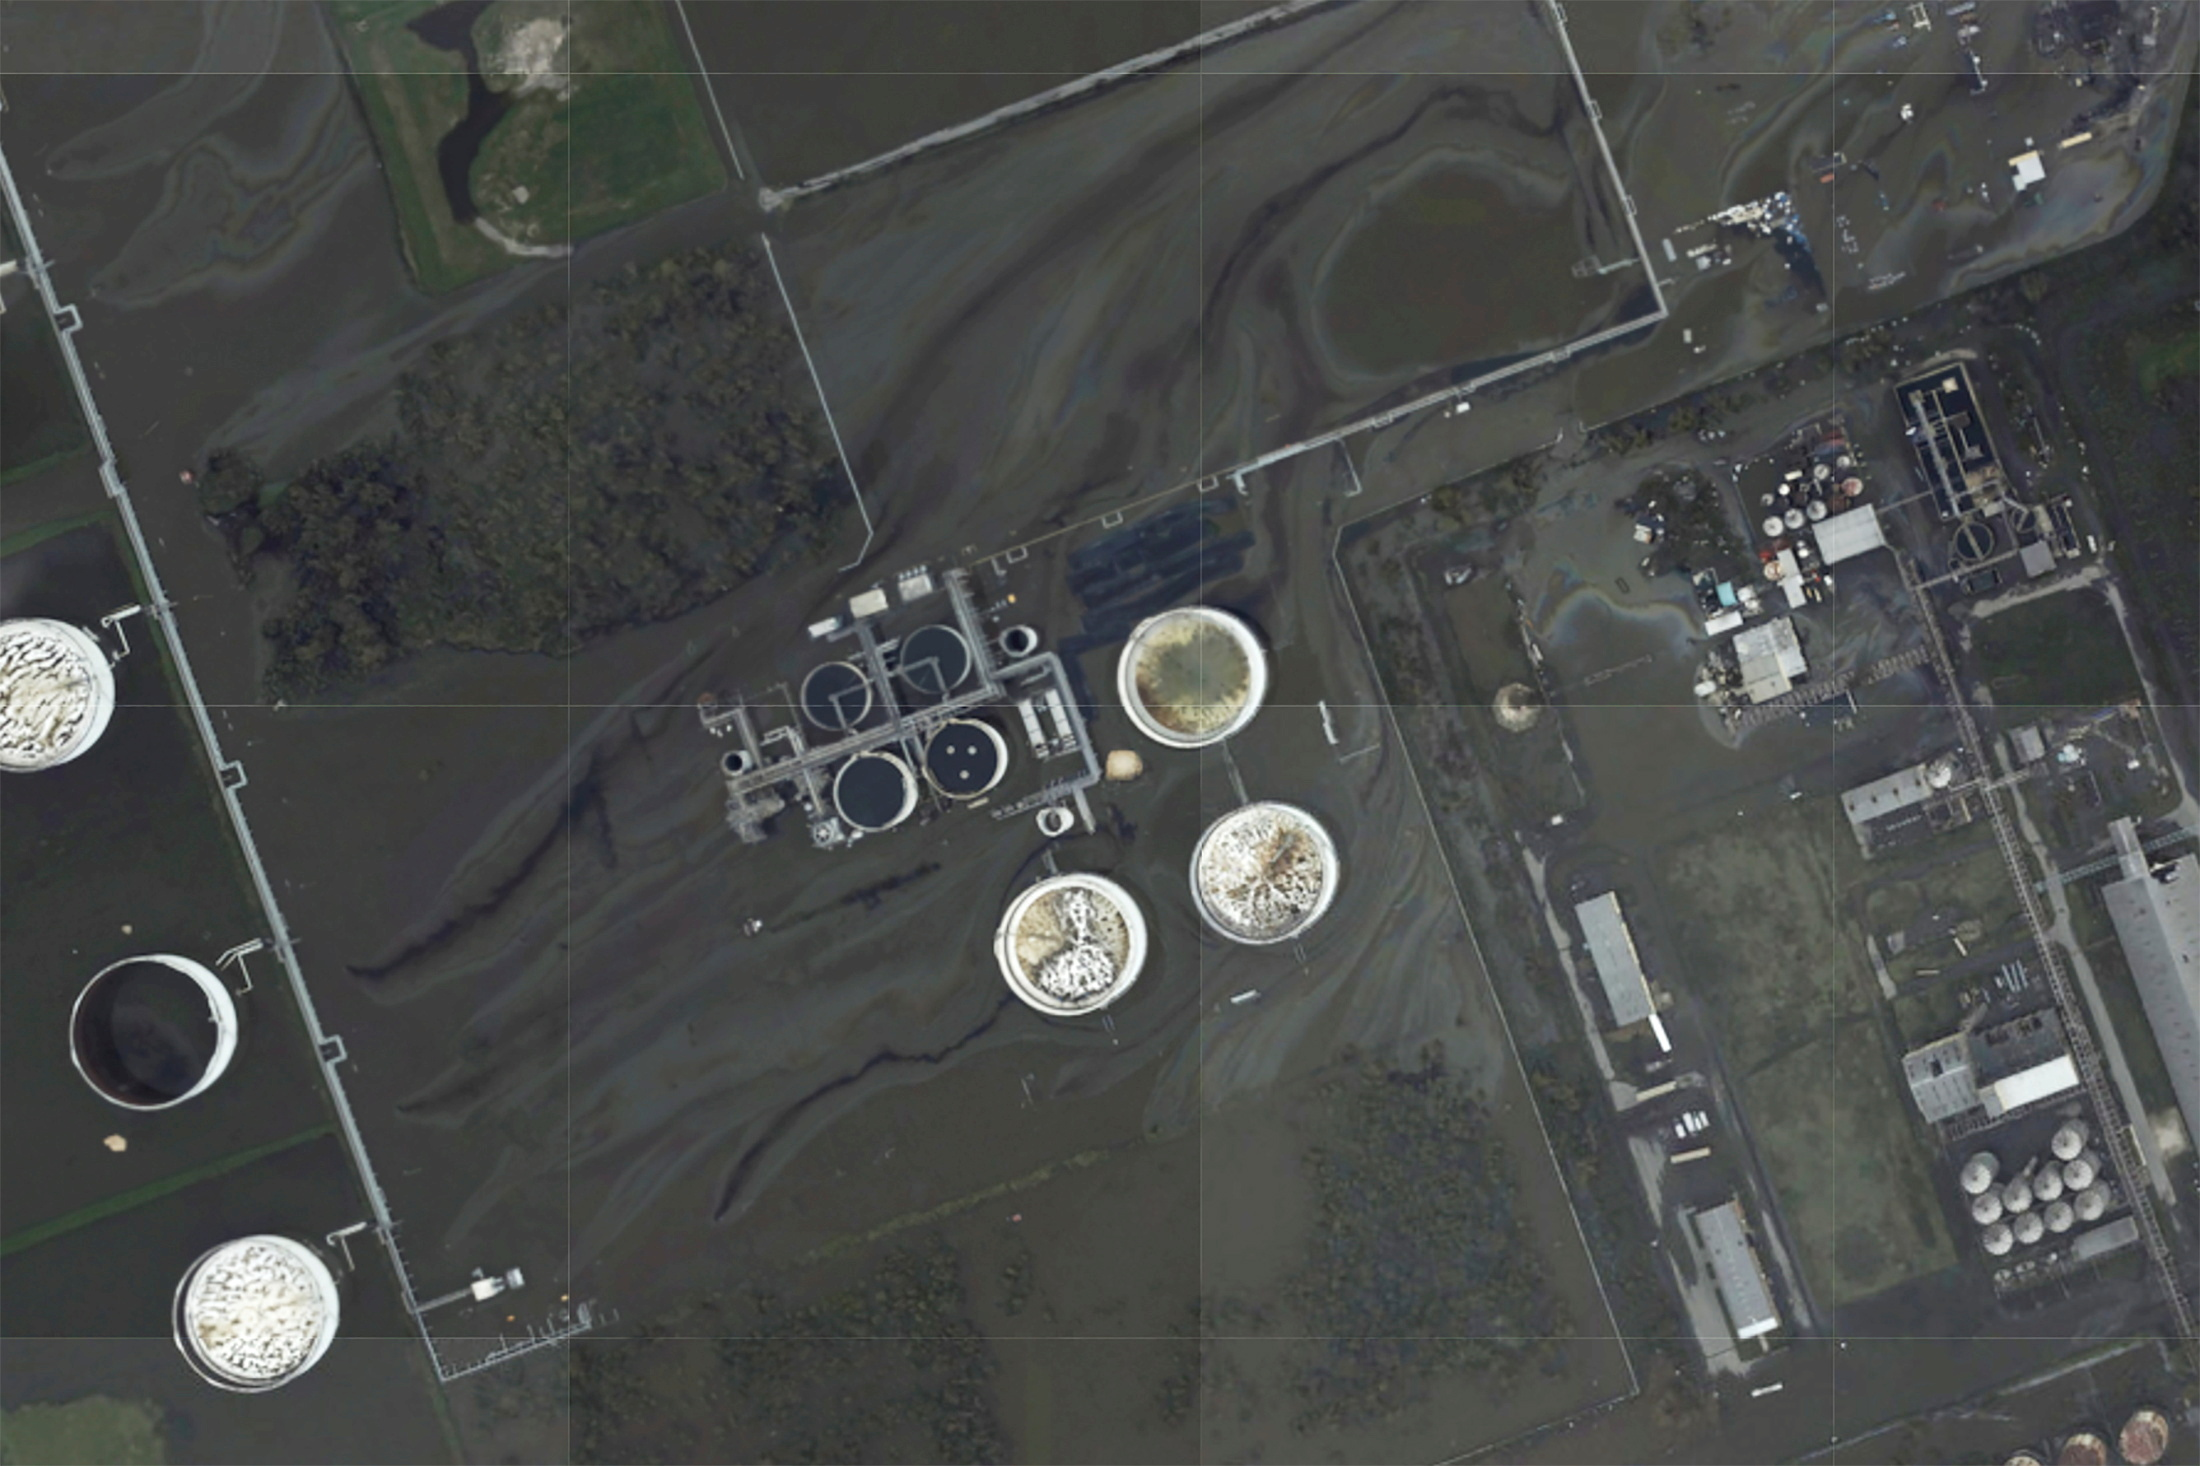 A sheen appears on the flooded property of the Phillips 66 Alliance Refinery, following the passing of Hurricane Ida in an NOAA surveillance photograph taken south of Belle Chasse, Louisiana, U.S. August 31, 2021. NOAA/Handout via REUTERS